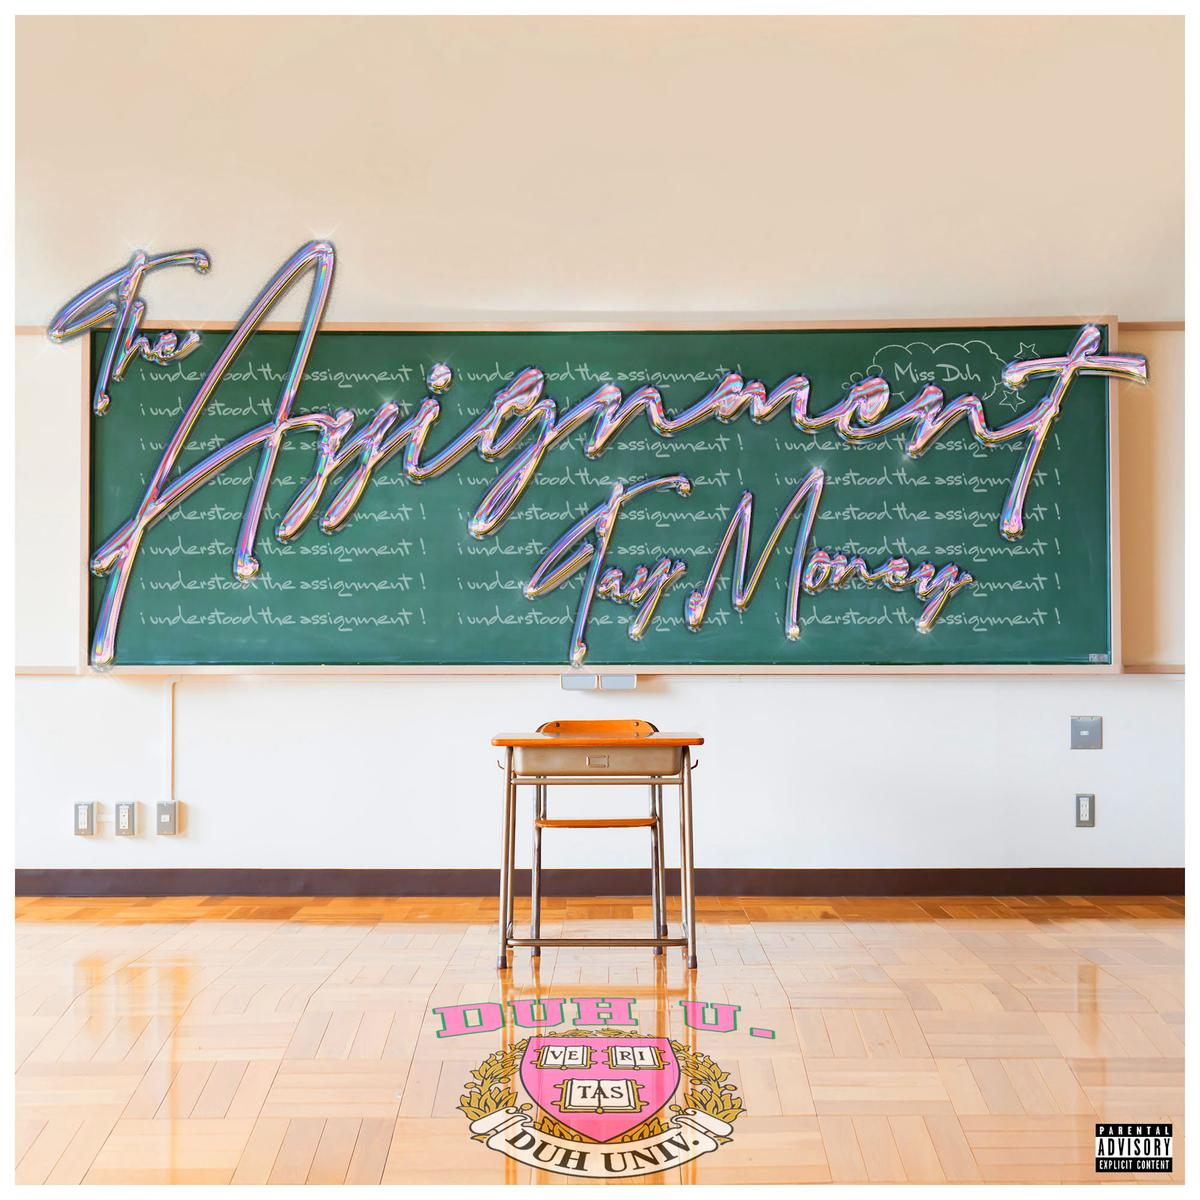 MP3: Tay Money - The Assignment